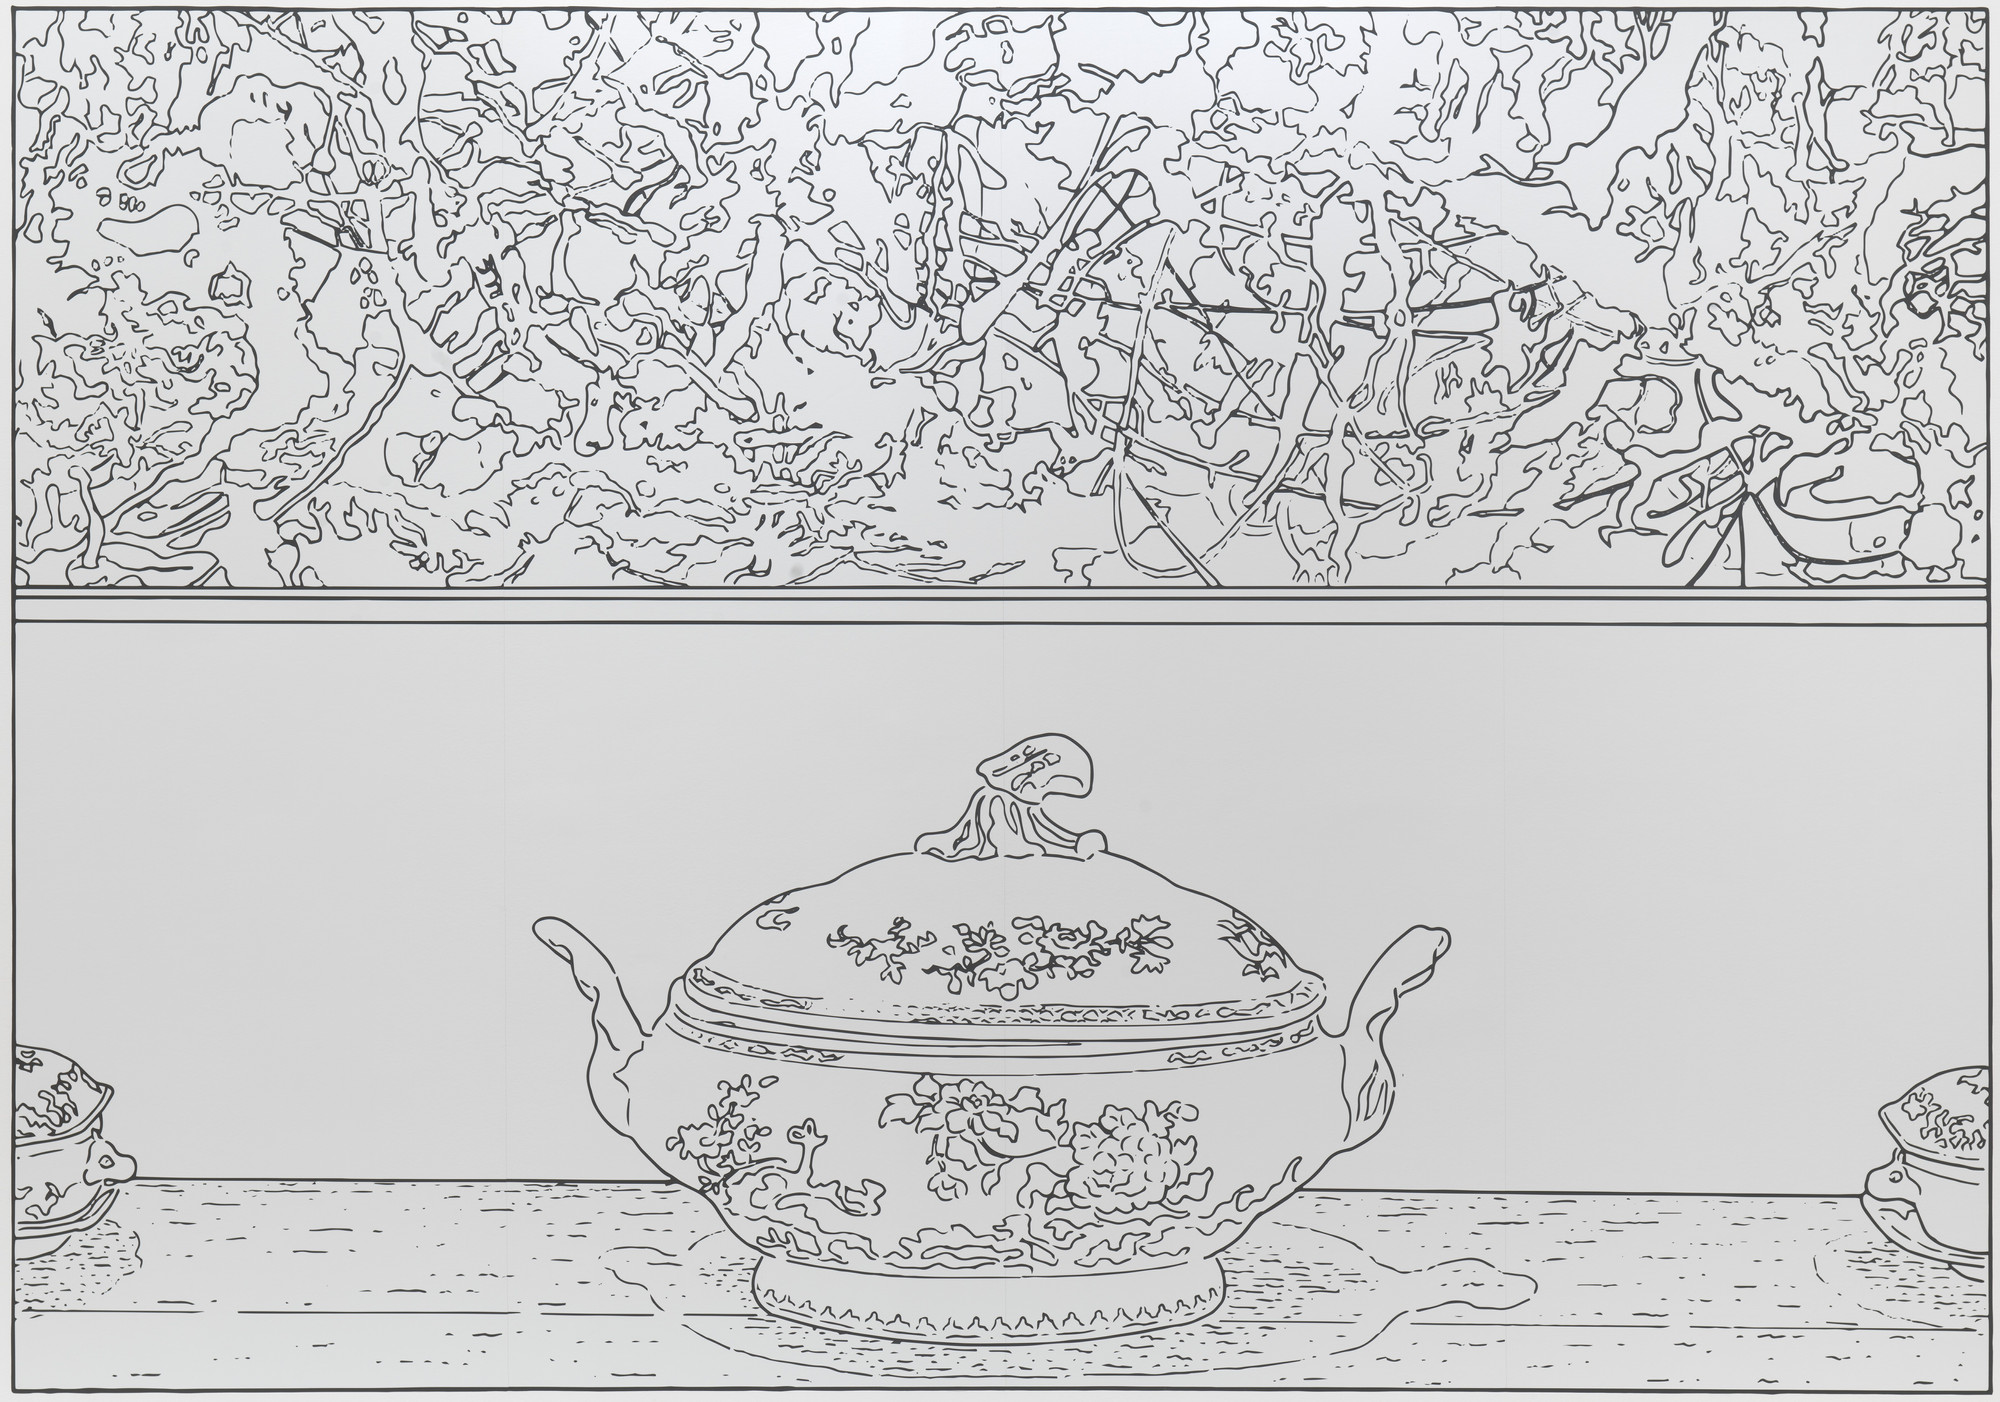 Louise Lawler. Pollock and Tureen (traced). 1984/2013